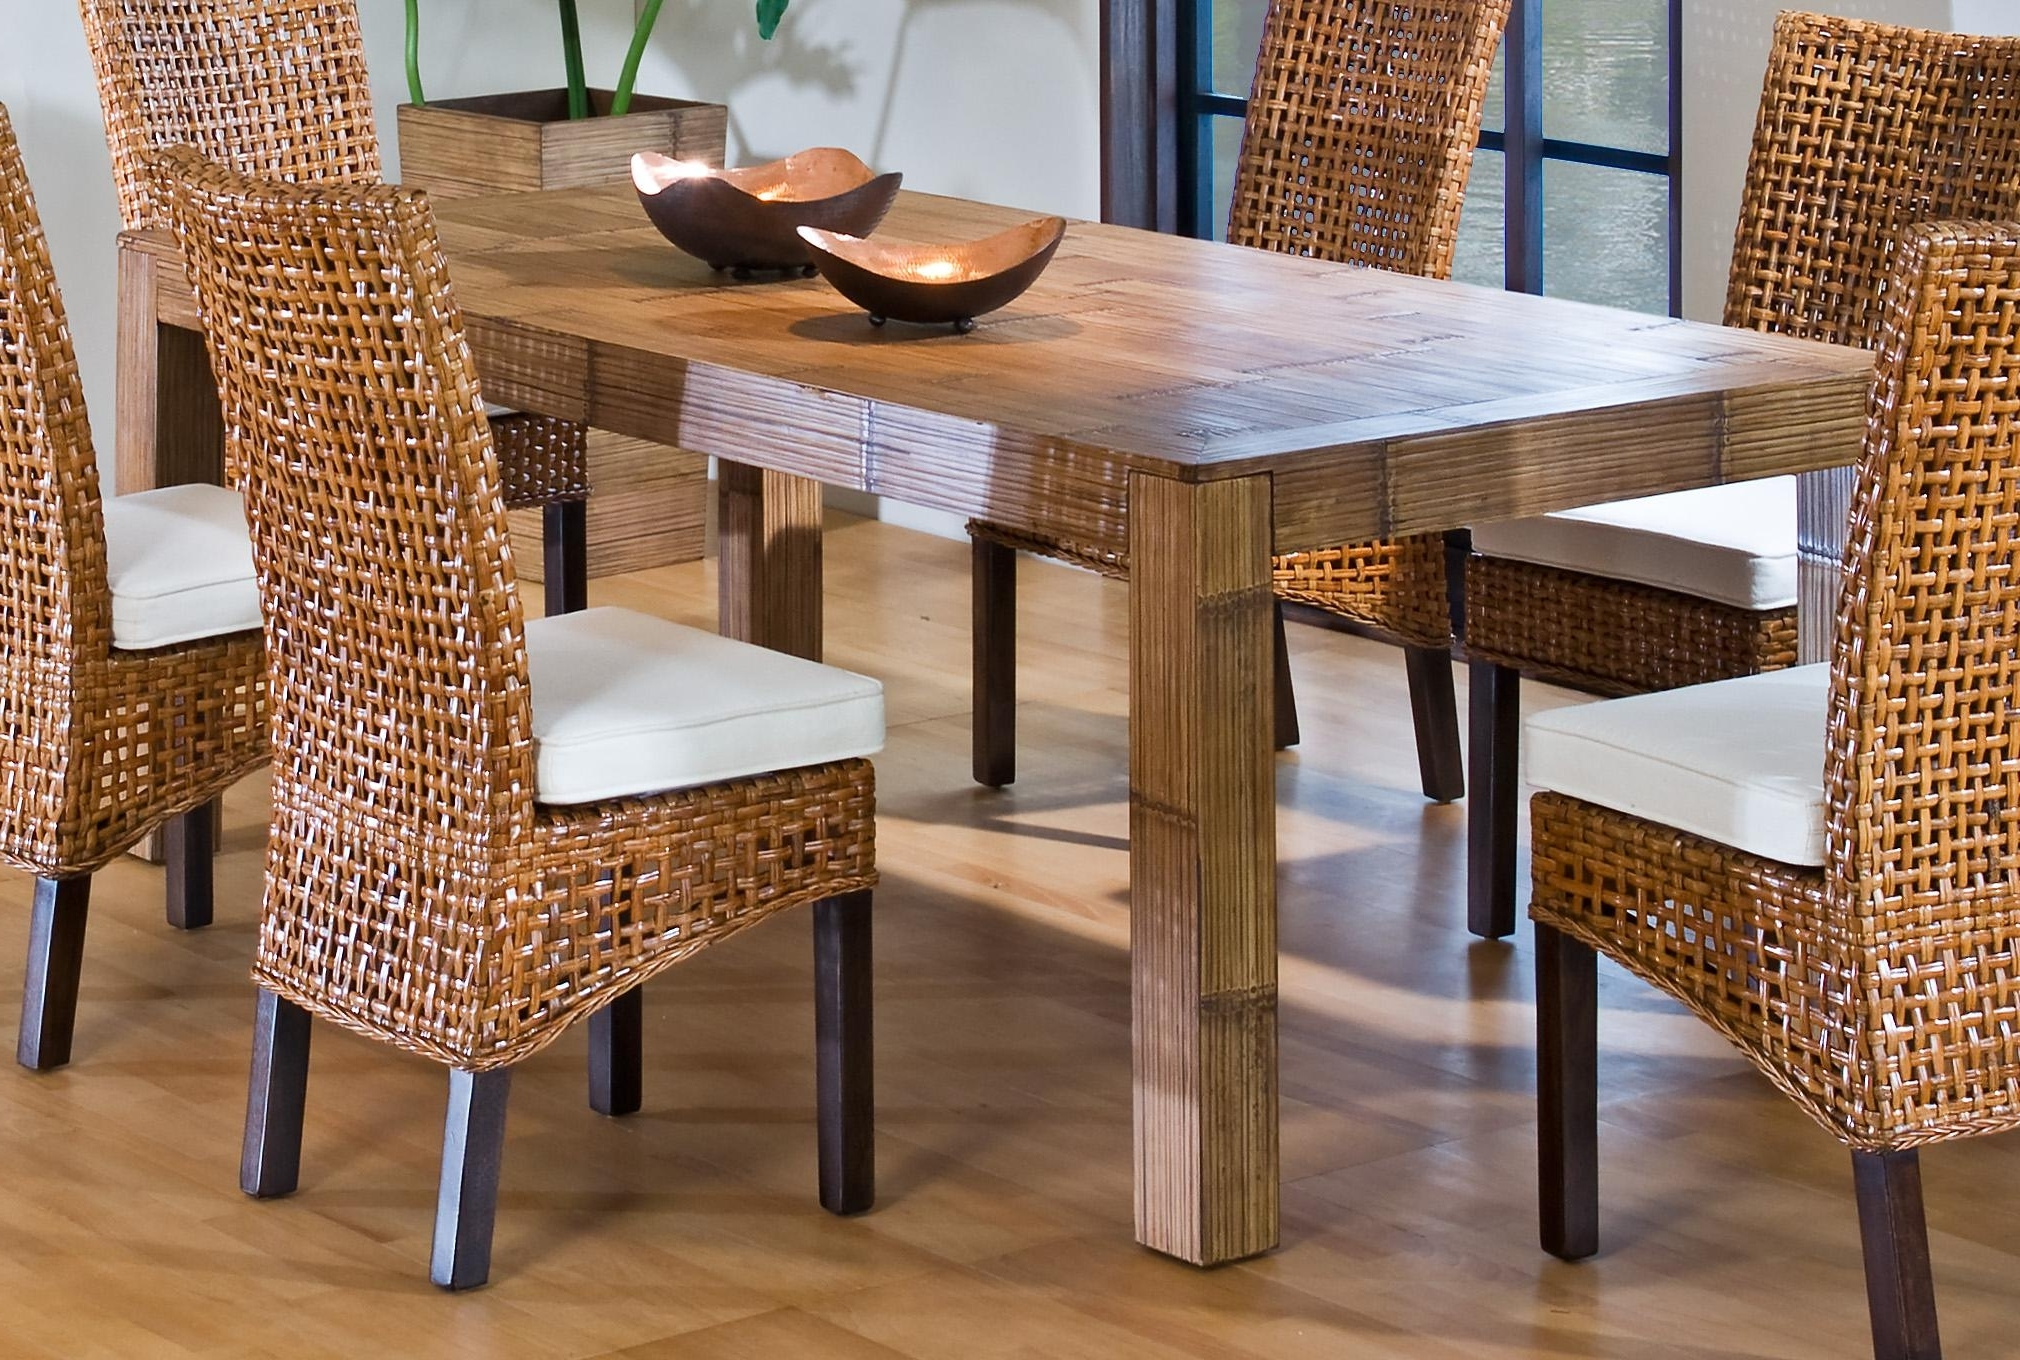 Dining Table Indoor Wicker Dining Table Dining Table And 8 Chairs Regarding Most Current Rattan Dining Tables (View 2 of 25)